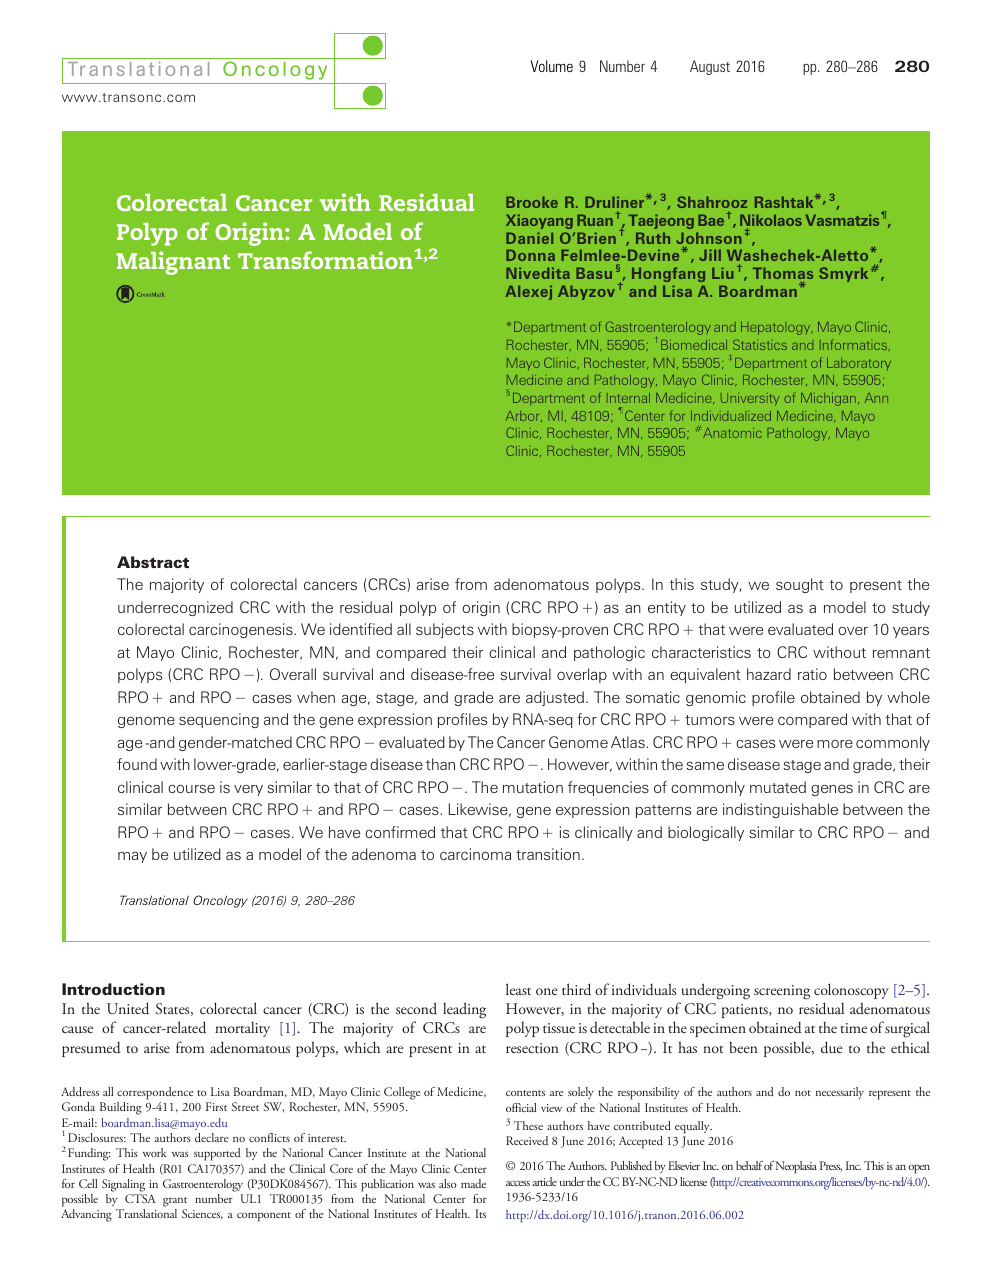 Colorectal Cancer with Residual Polyp of Origin: A Model of